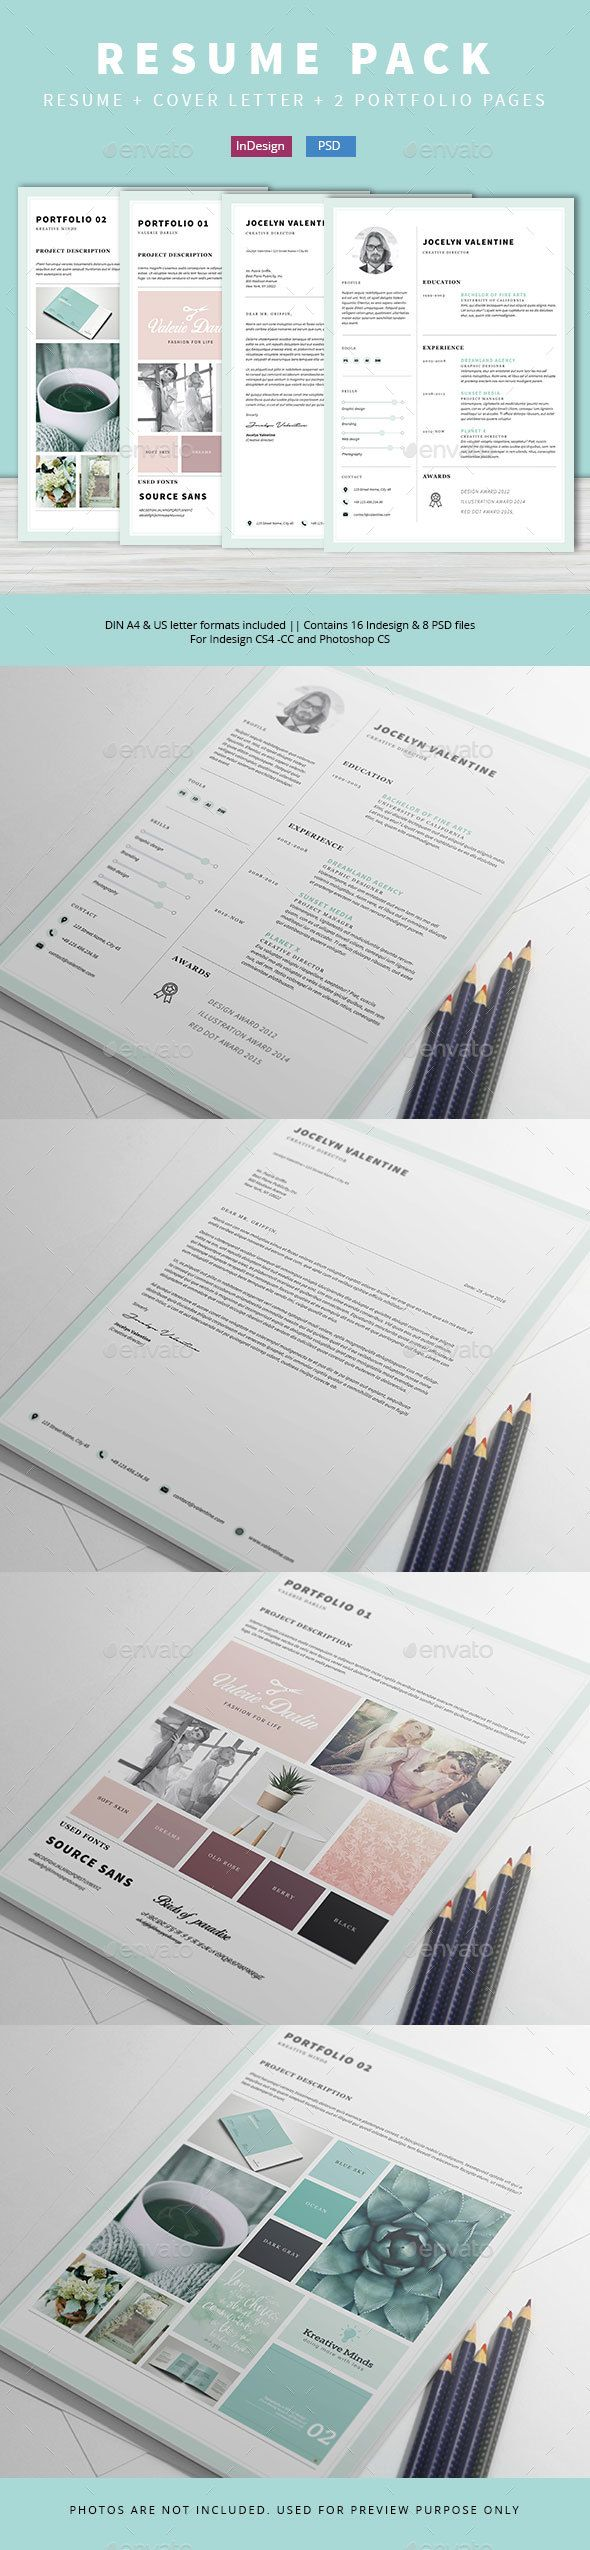 4 Pieces Resume | Curriculum creativo, Plantilla cv y Currículum